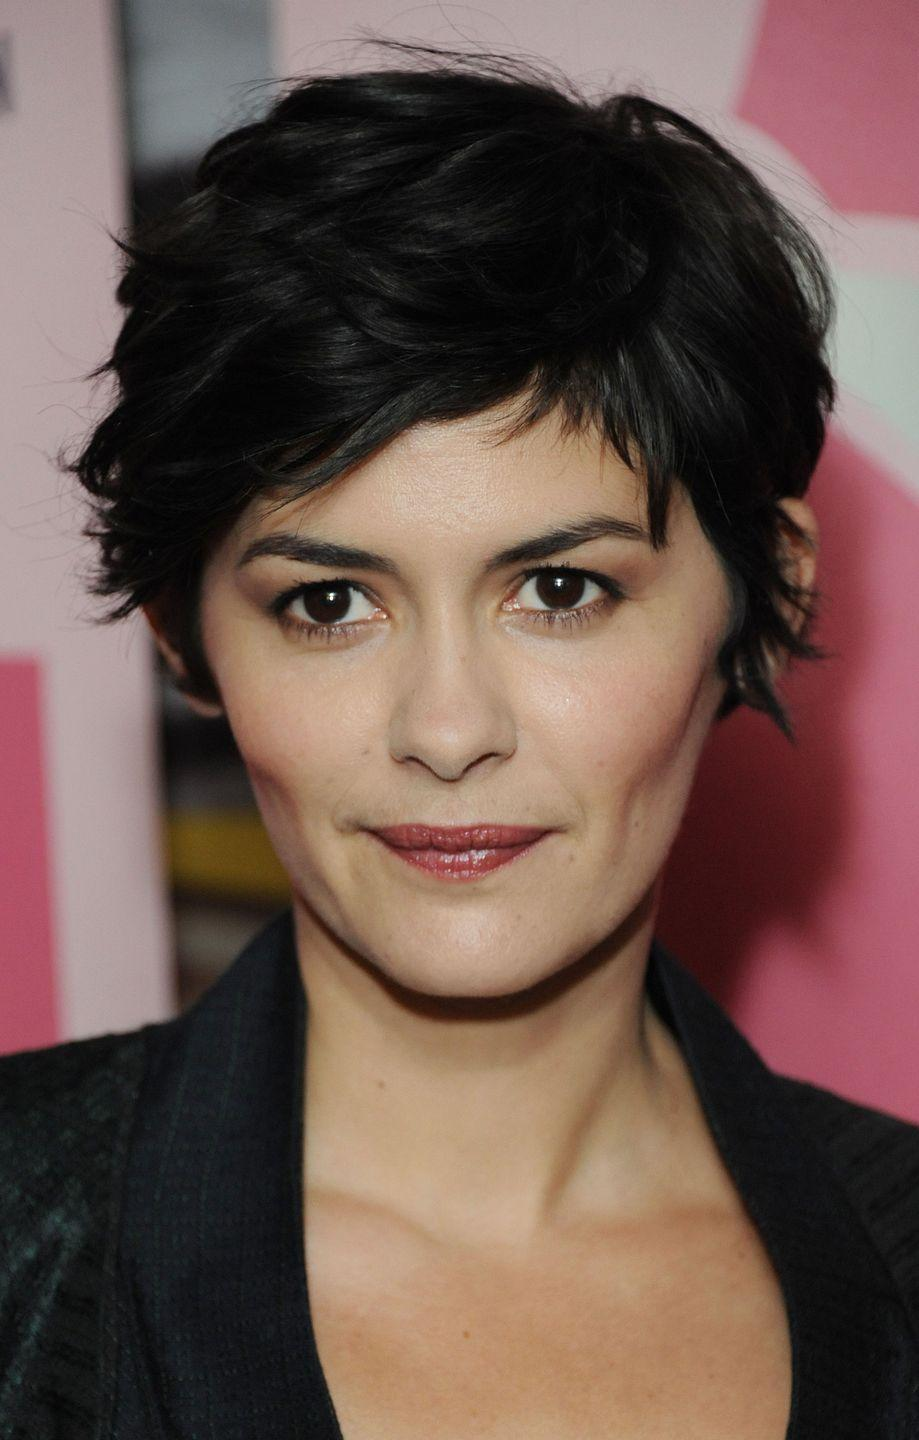 <p>For French girl cool, try a shaggy pixie like Audrey Tautou's classic style. </p>